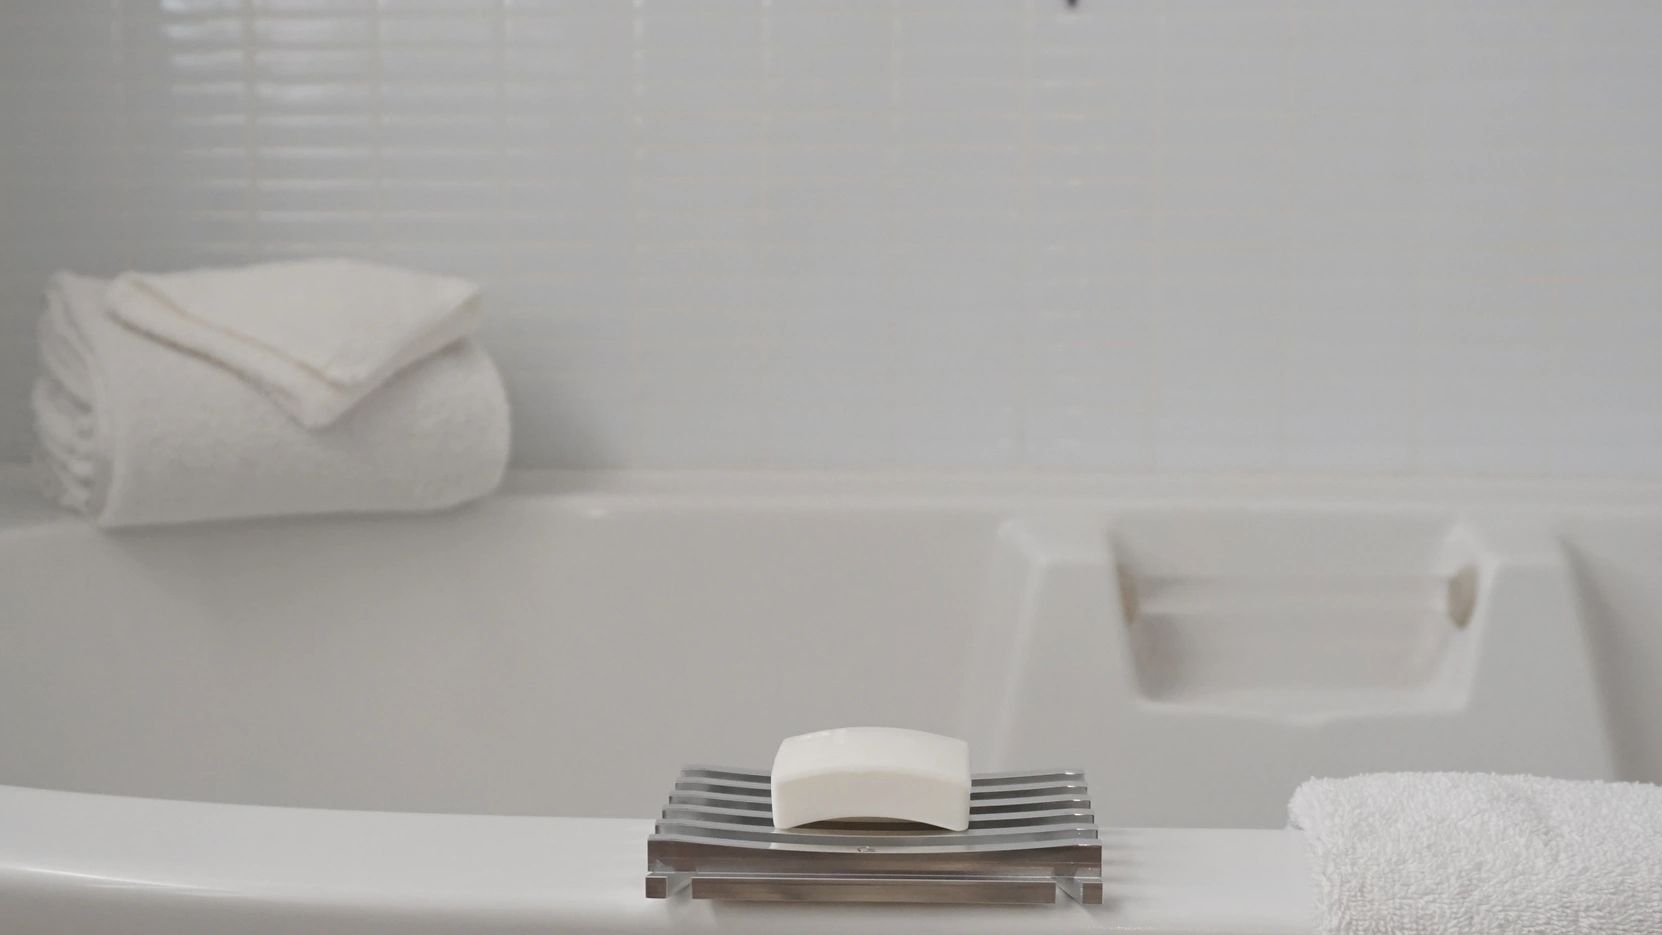 This shows the elegance of our soap dish product and how it can be used in a bathroom.